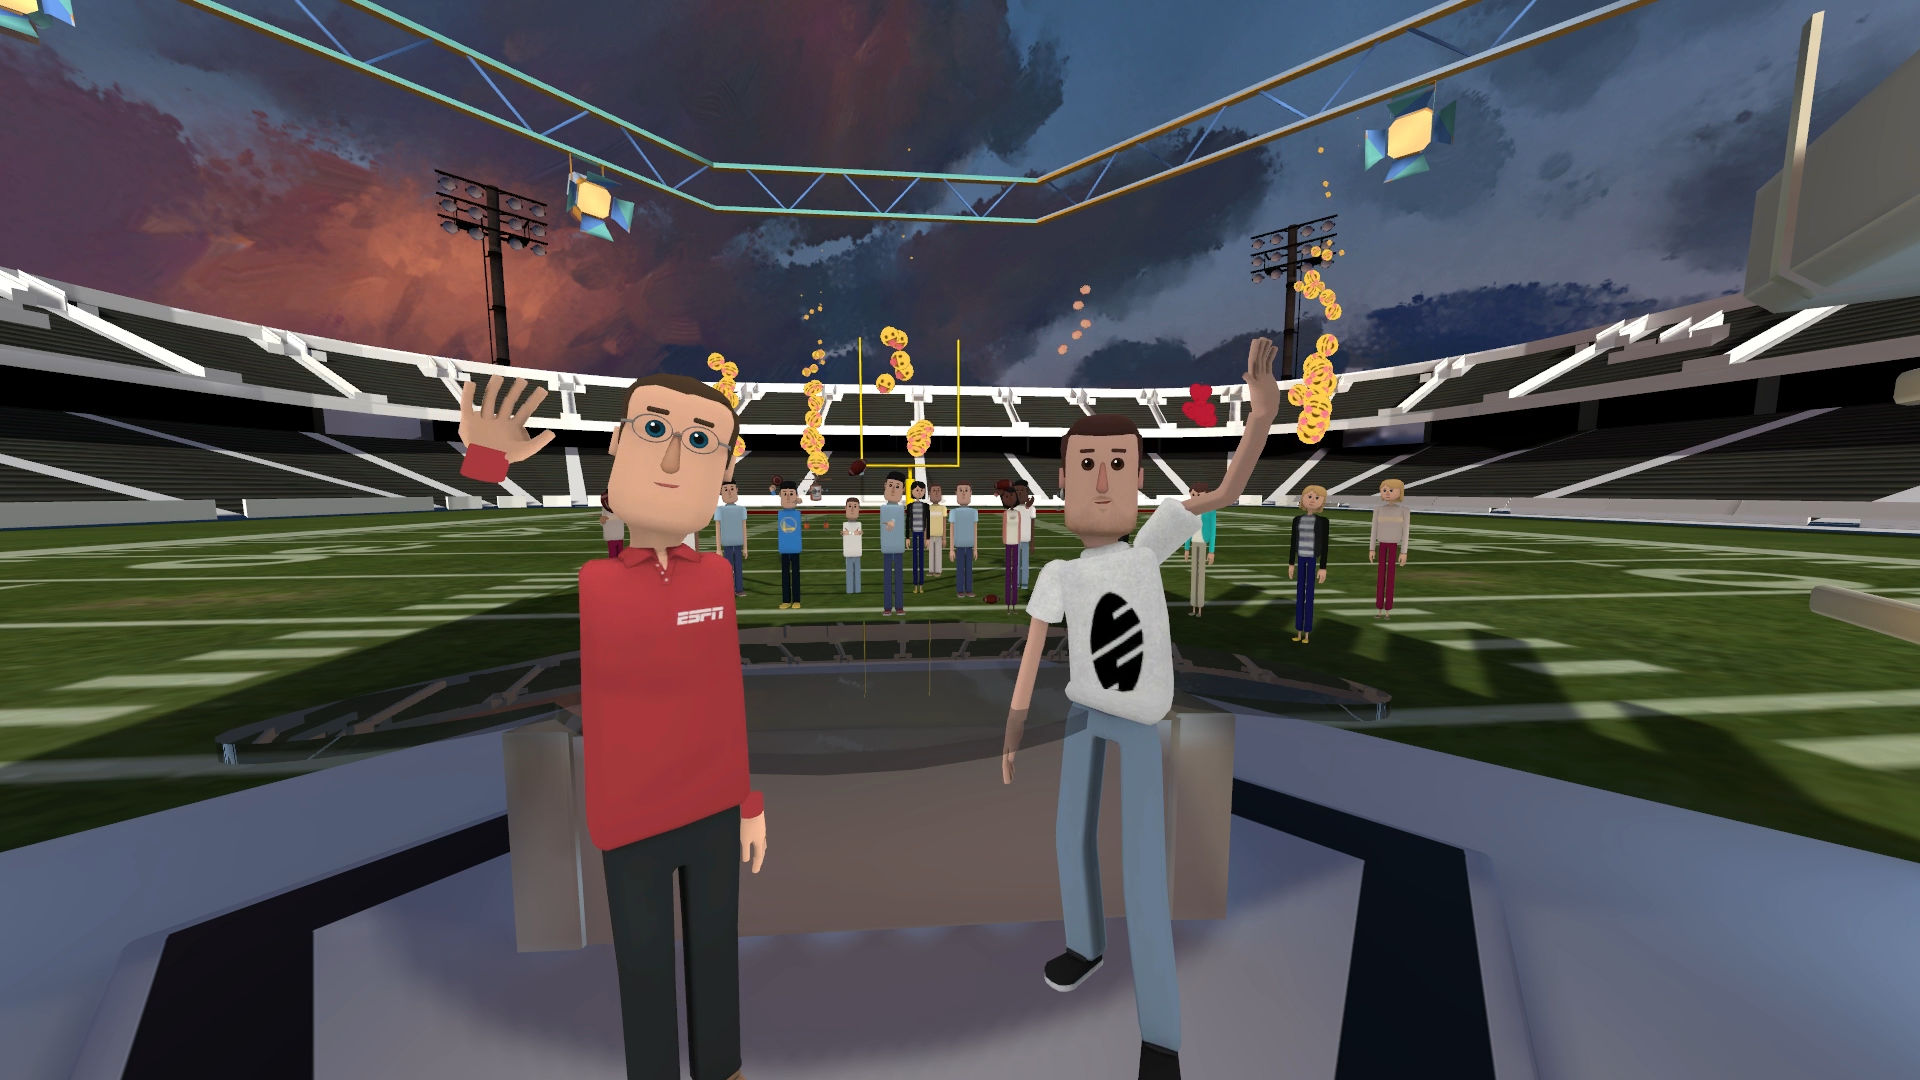 ESPN Offers Football Fans a VR Interview With Kansas City